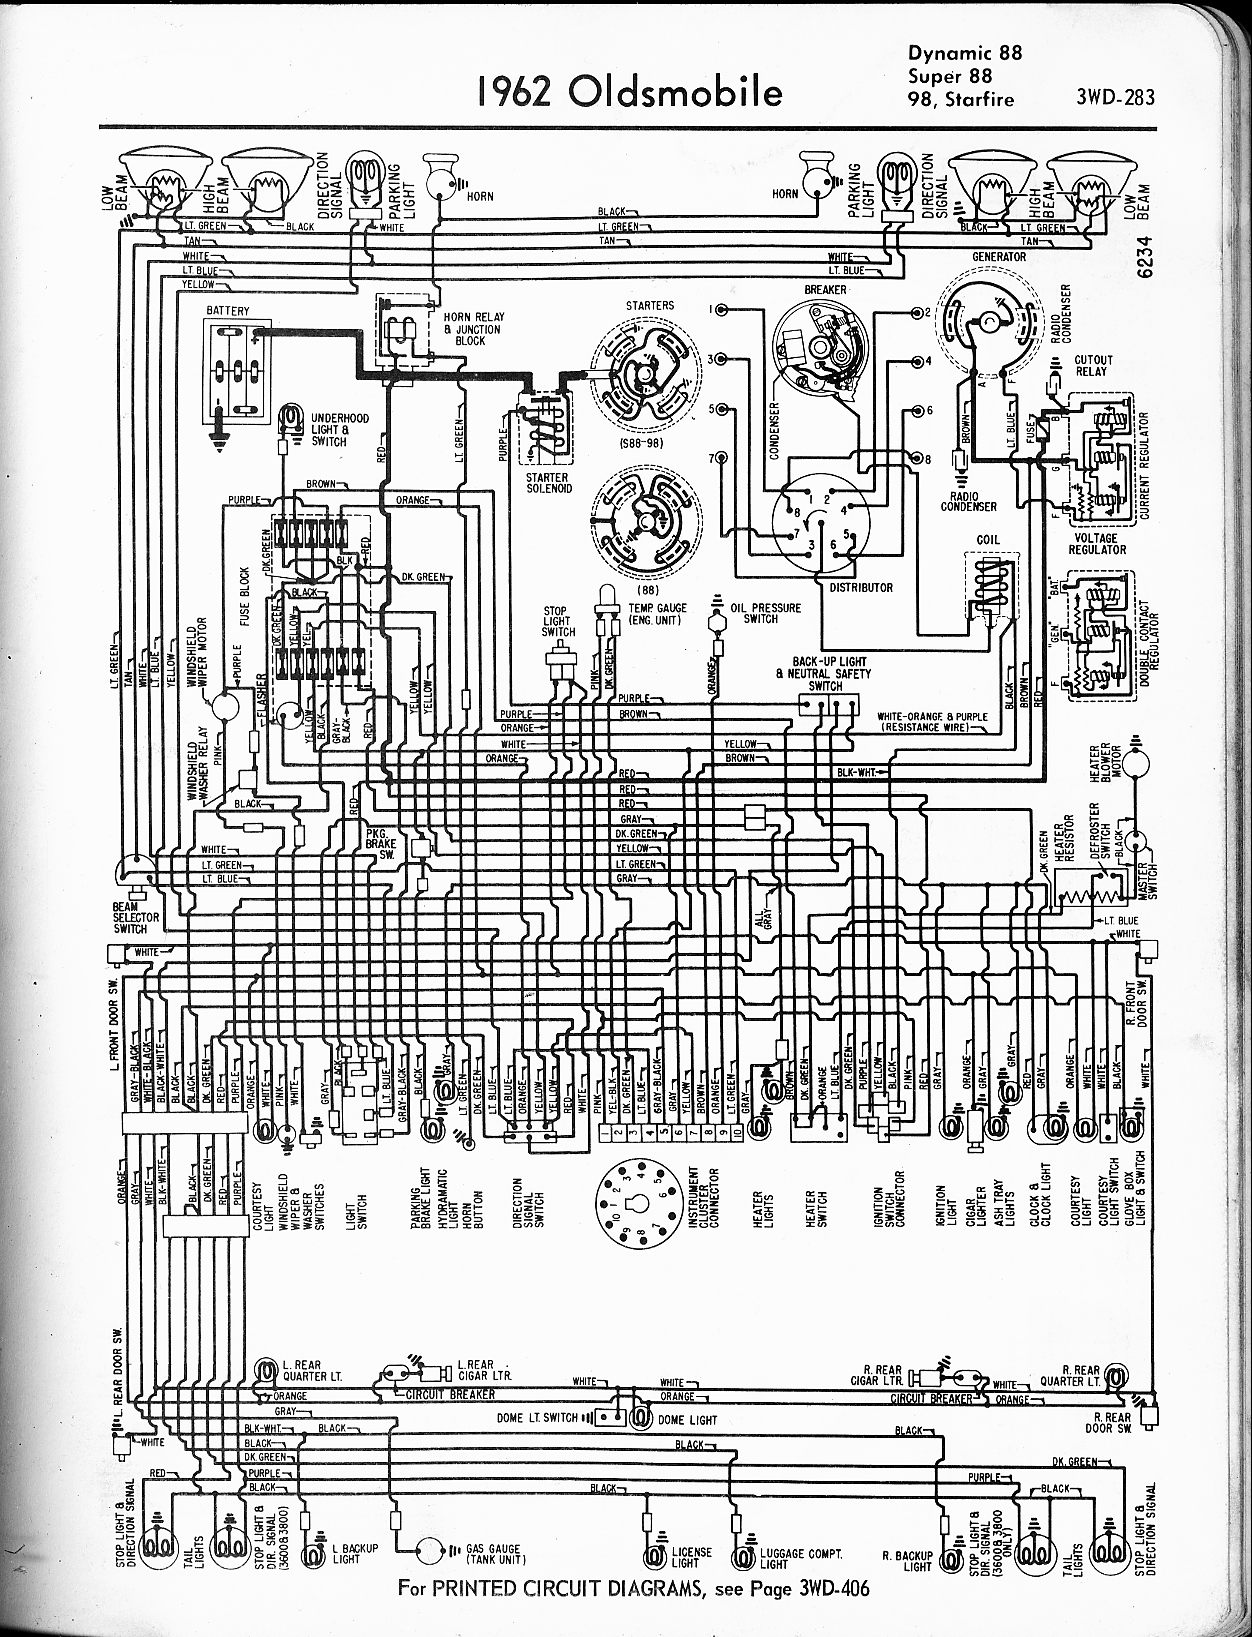 1956 Oldsmobile 88 Wiring Diagram Owner Manual And 1937 Ford Ignition Third Level Rh 7 11 13 Jacobwinterstein Com Alero